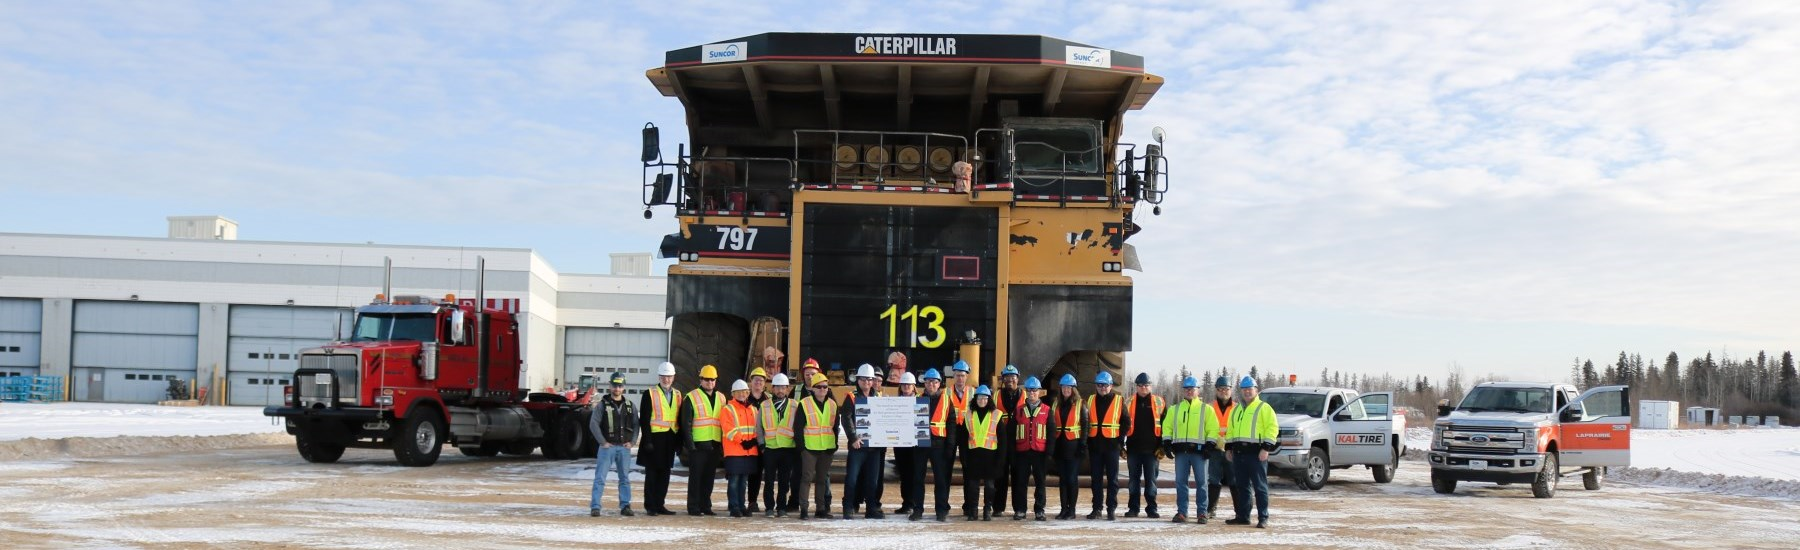 supporters standing in front of donated haul truck